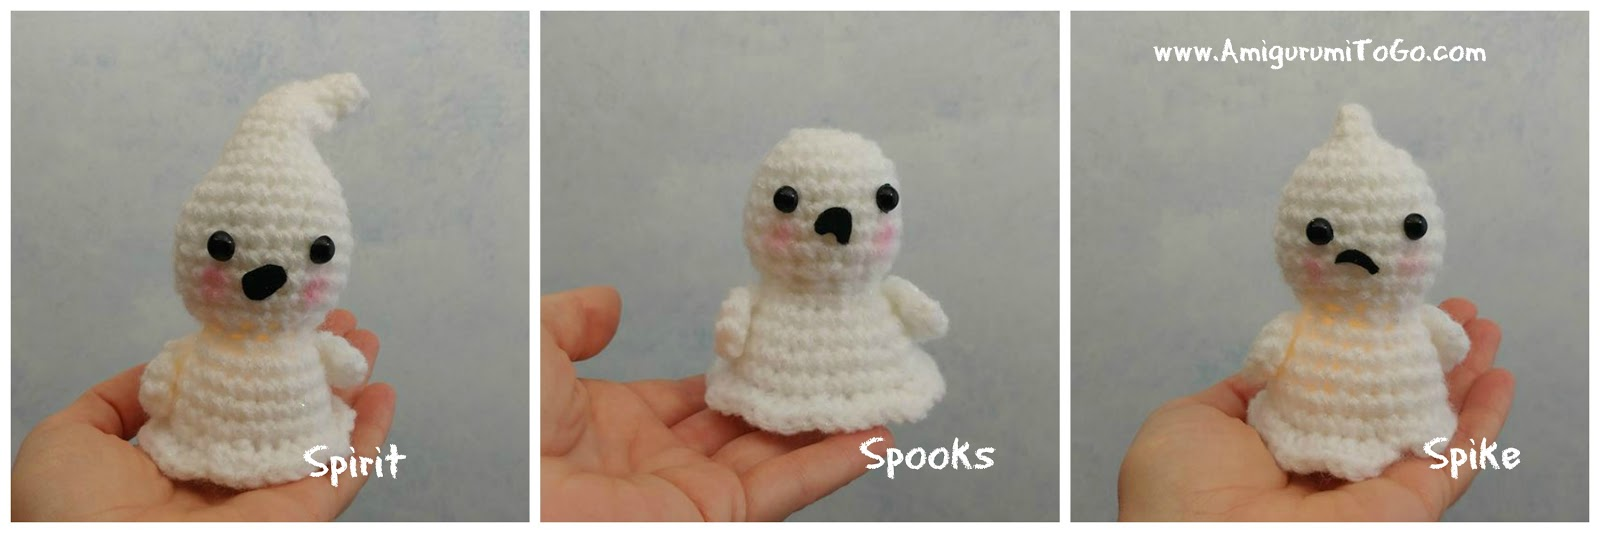 3 white crochet ghosts sitting on hand